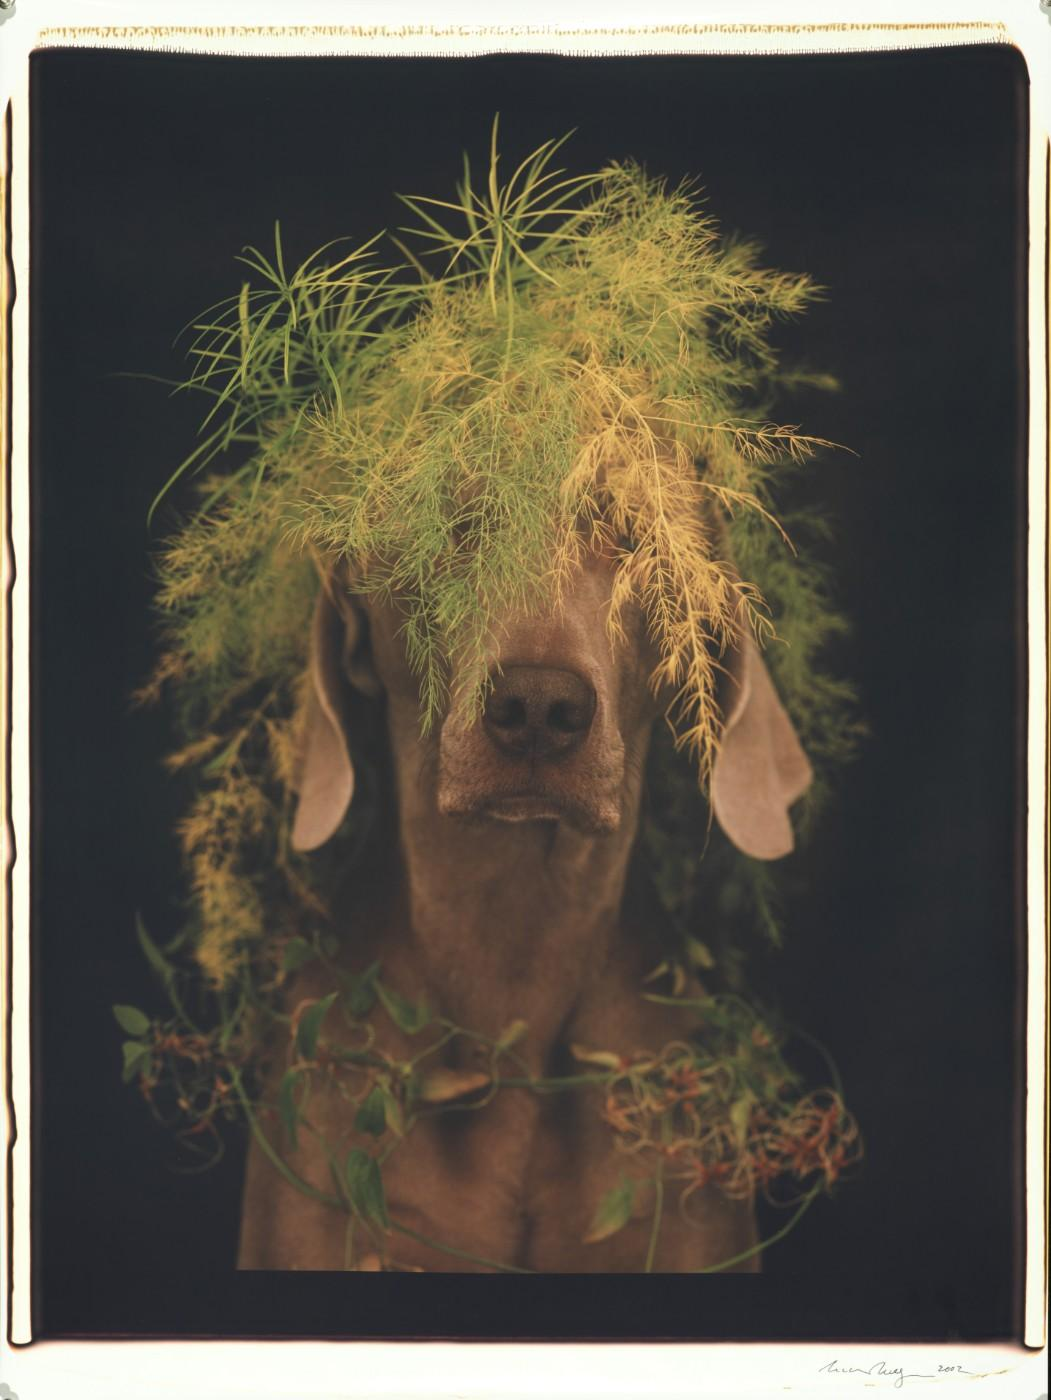 William Wegman, Feathery Greens, 2002